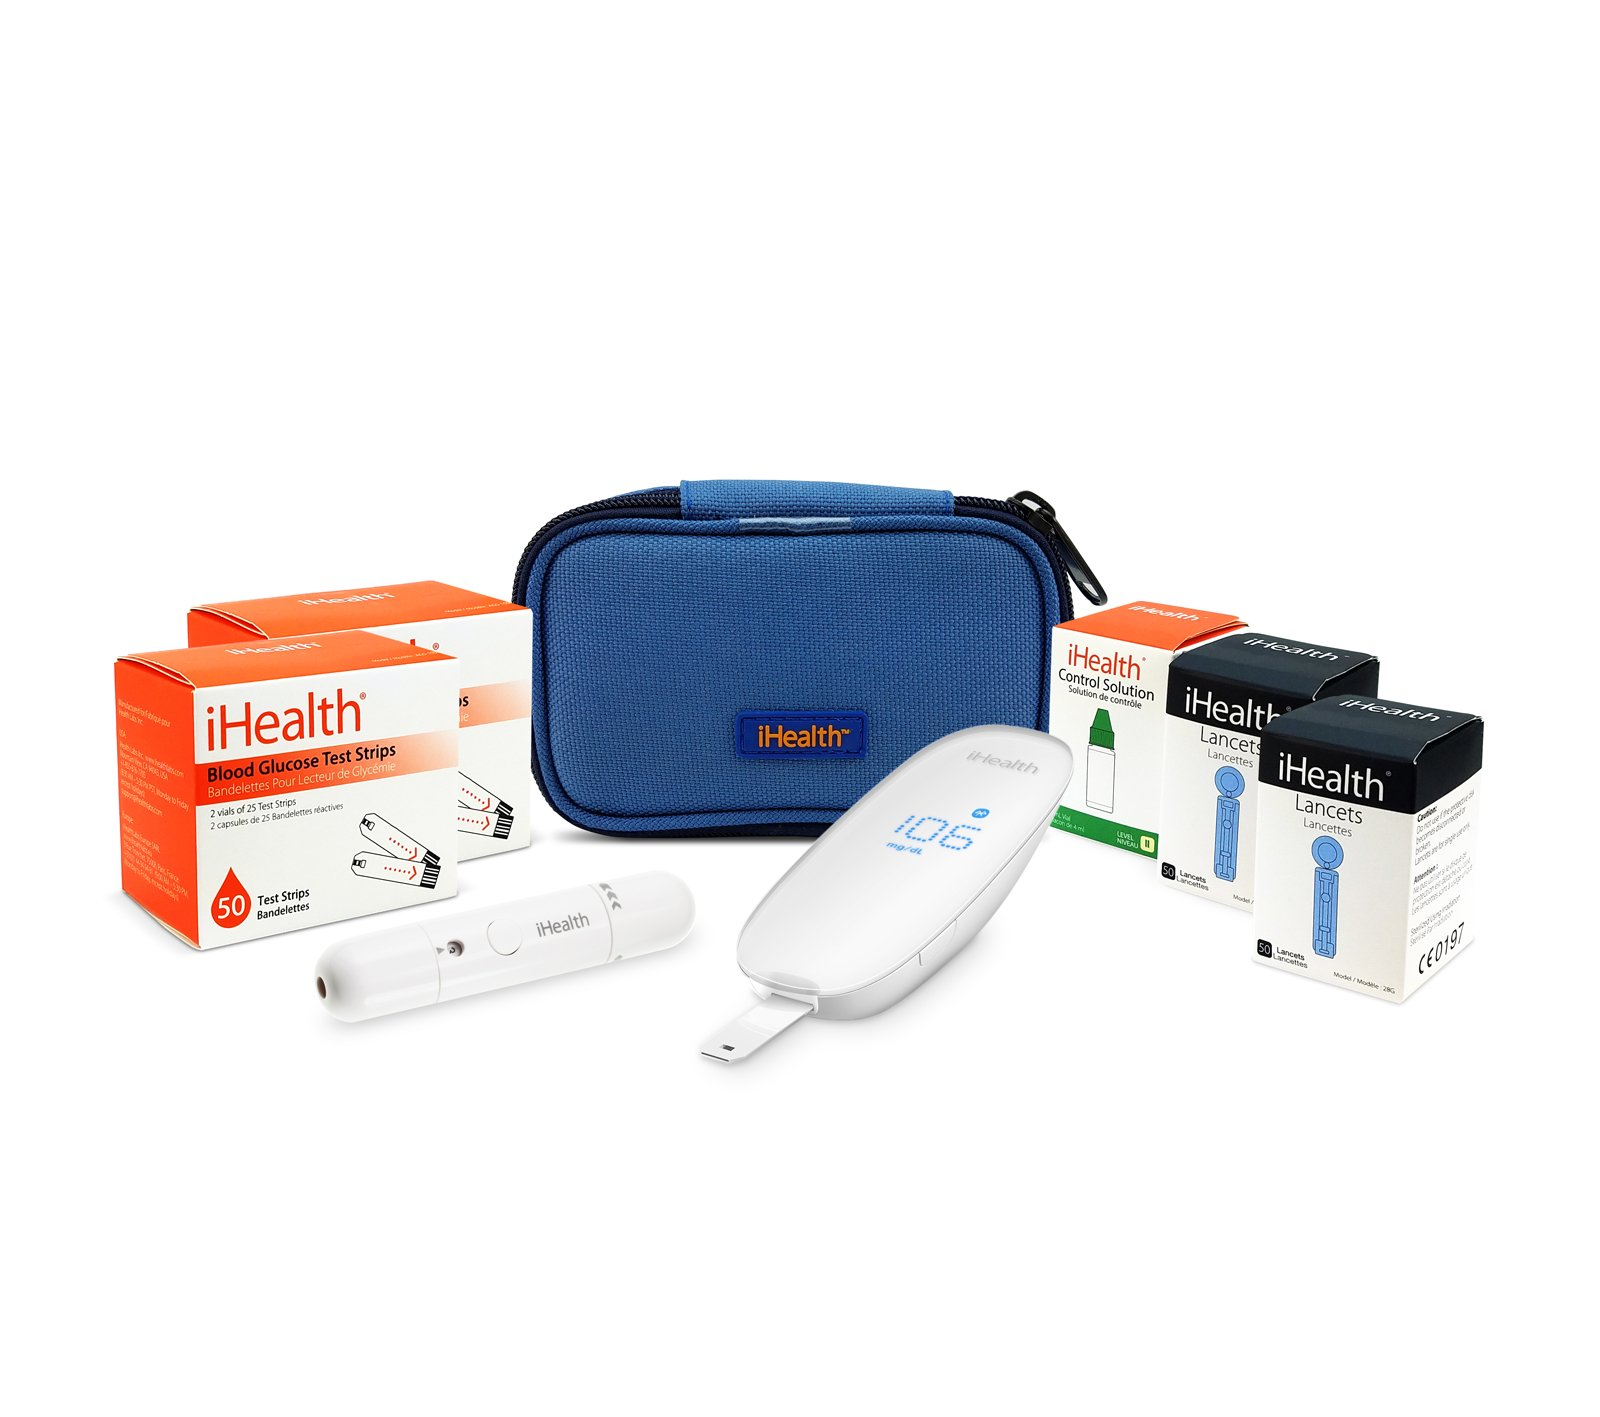 iHealth Smart Wireless Gluco Monitoring with 100 Test Strips, 100 Lancets, and Control Solution